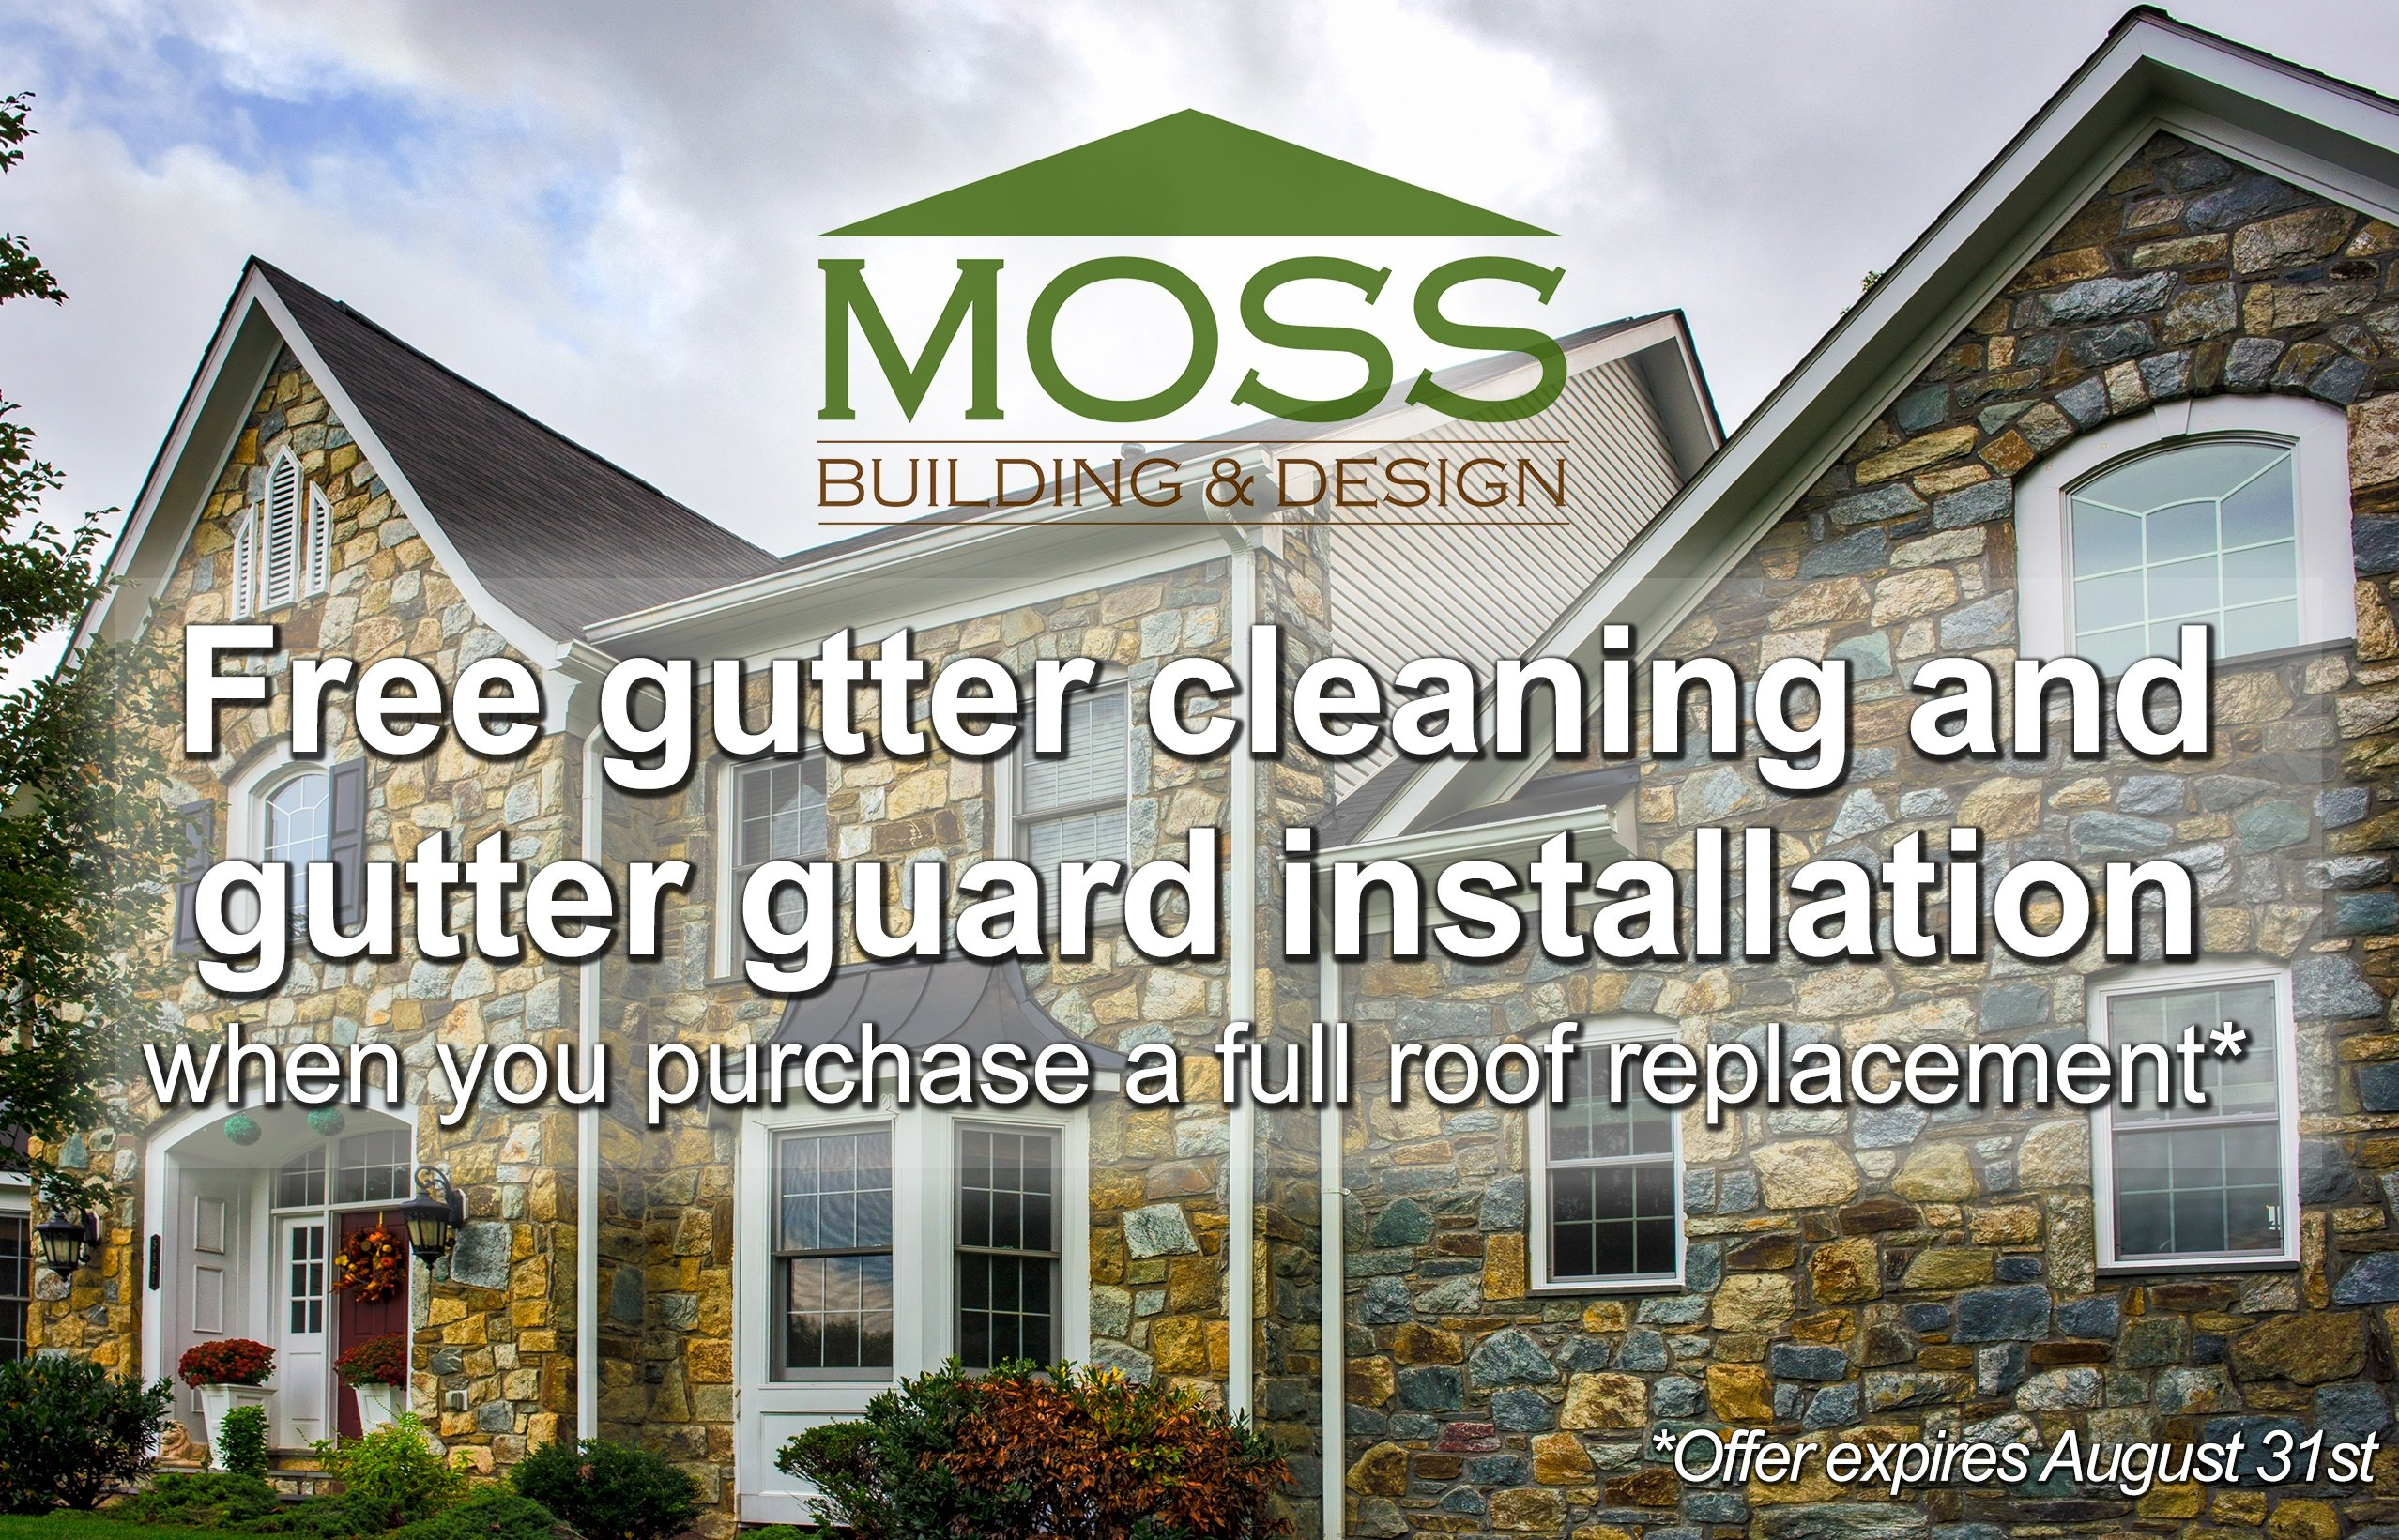 Roof replacement free gutter guards